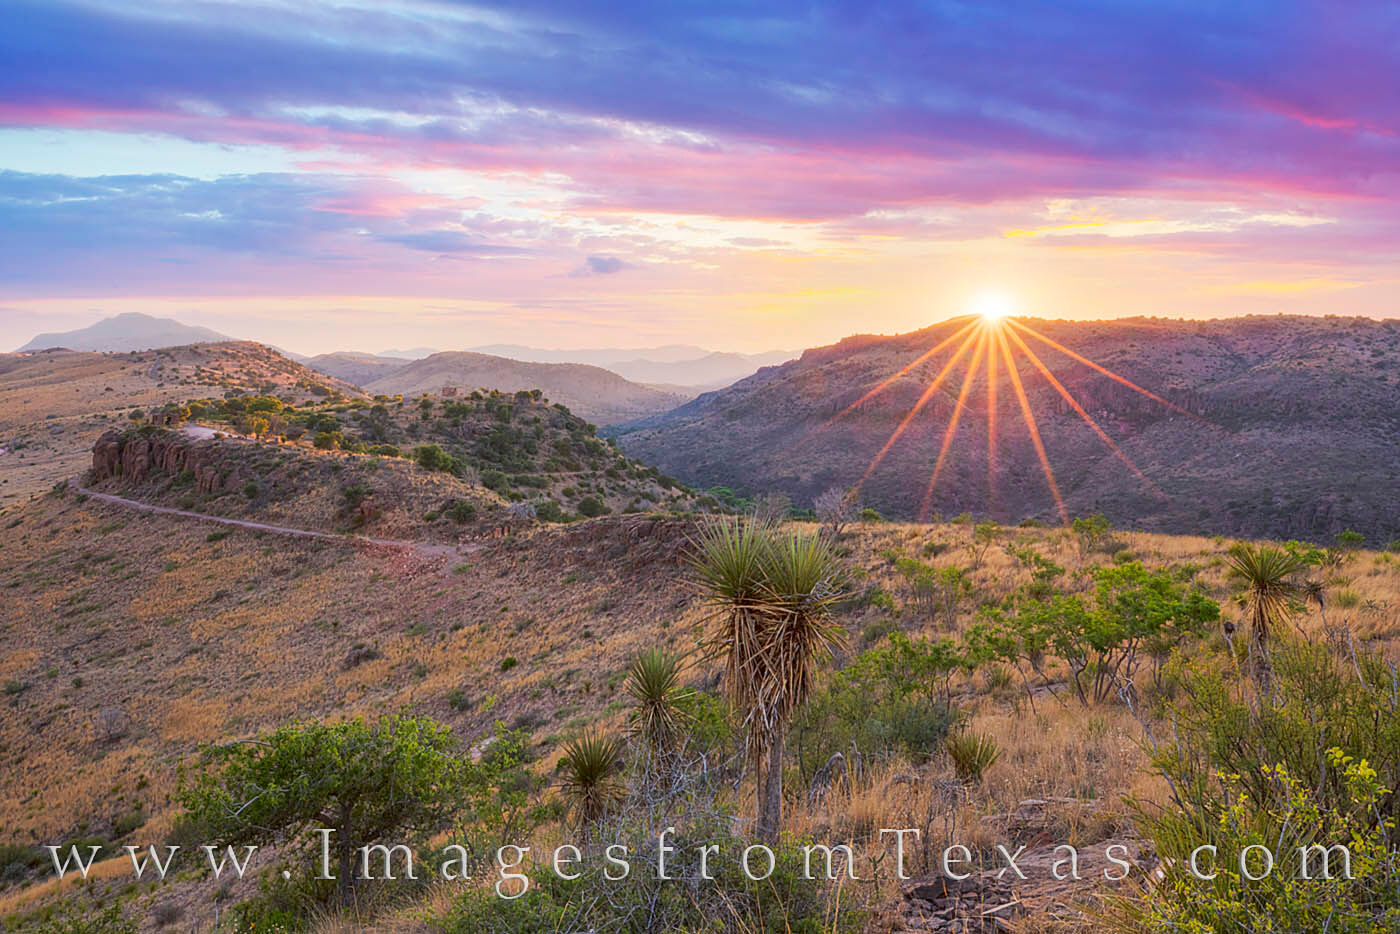 davis mountains, davis mountains state park, fort davis, CCC trail, west texas, texas images, texas sunsets